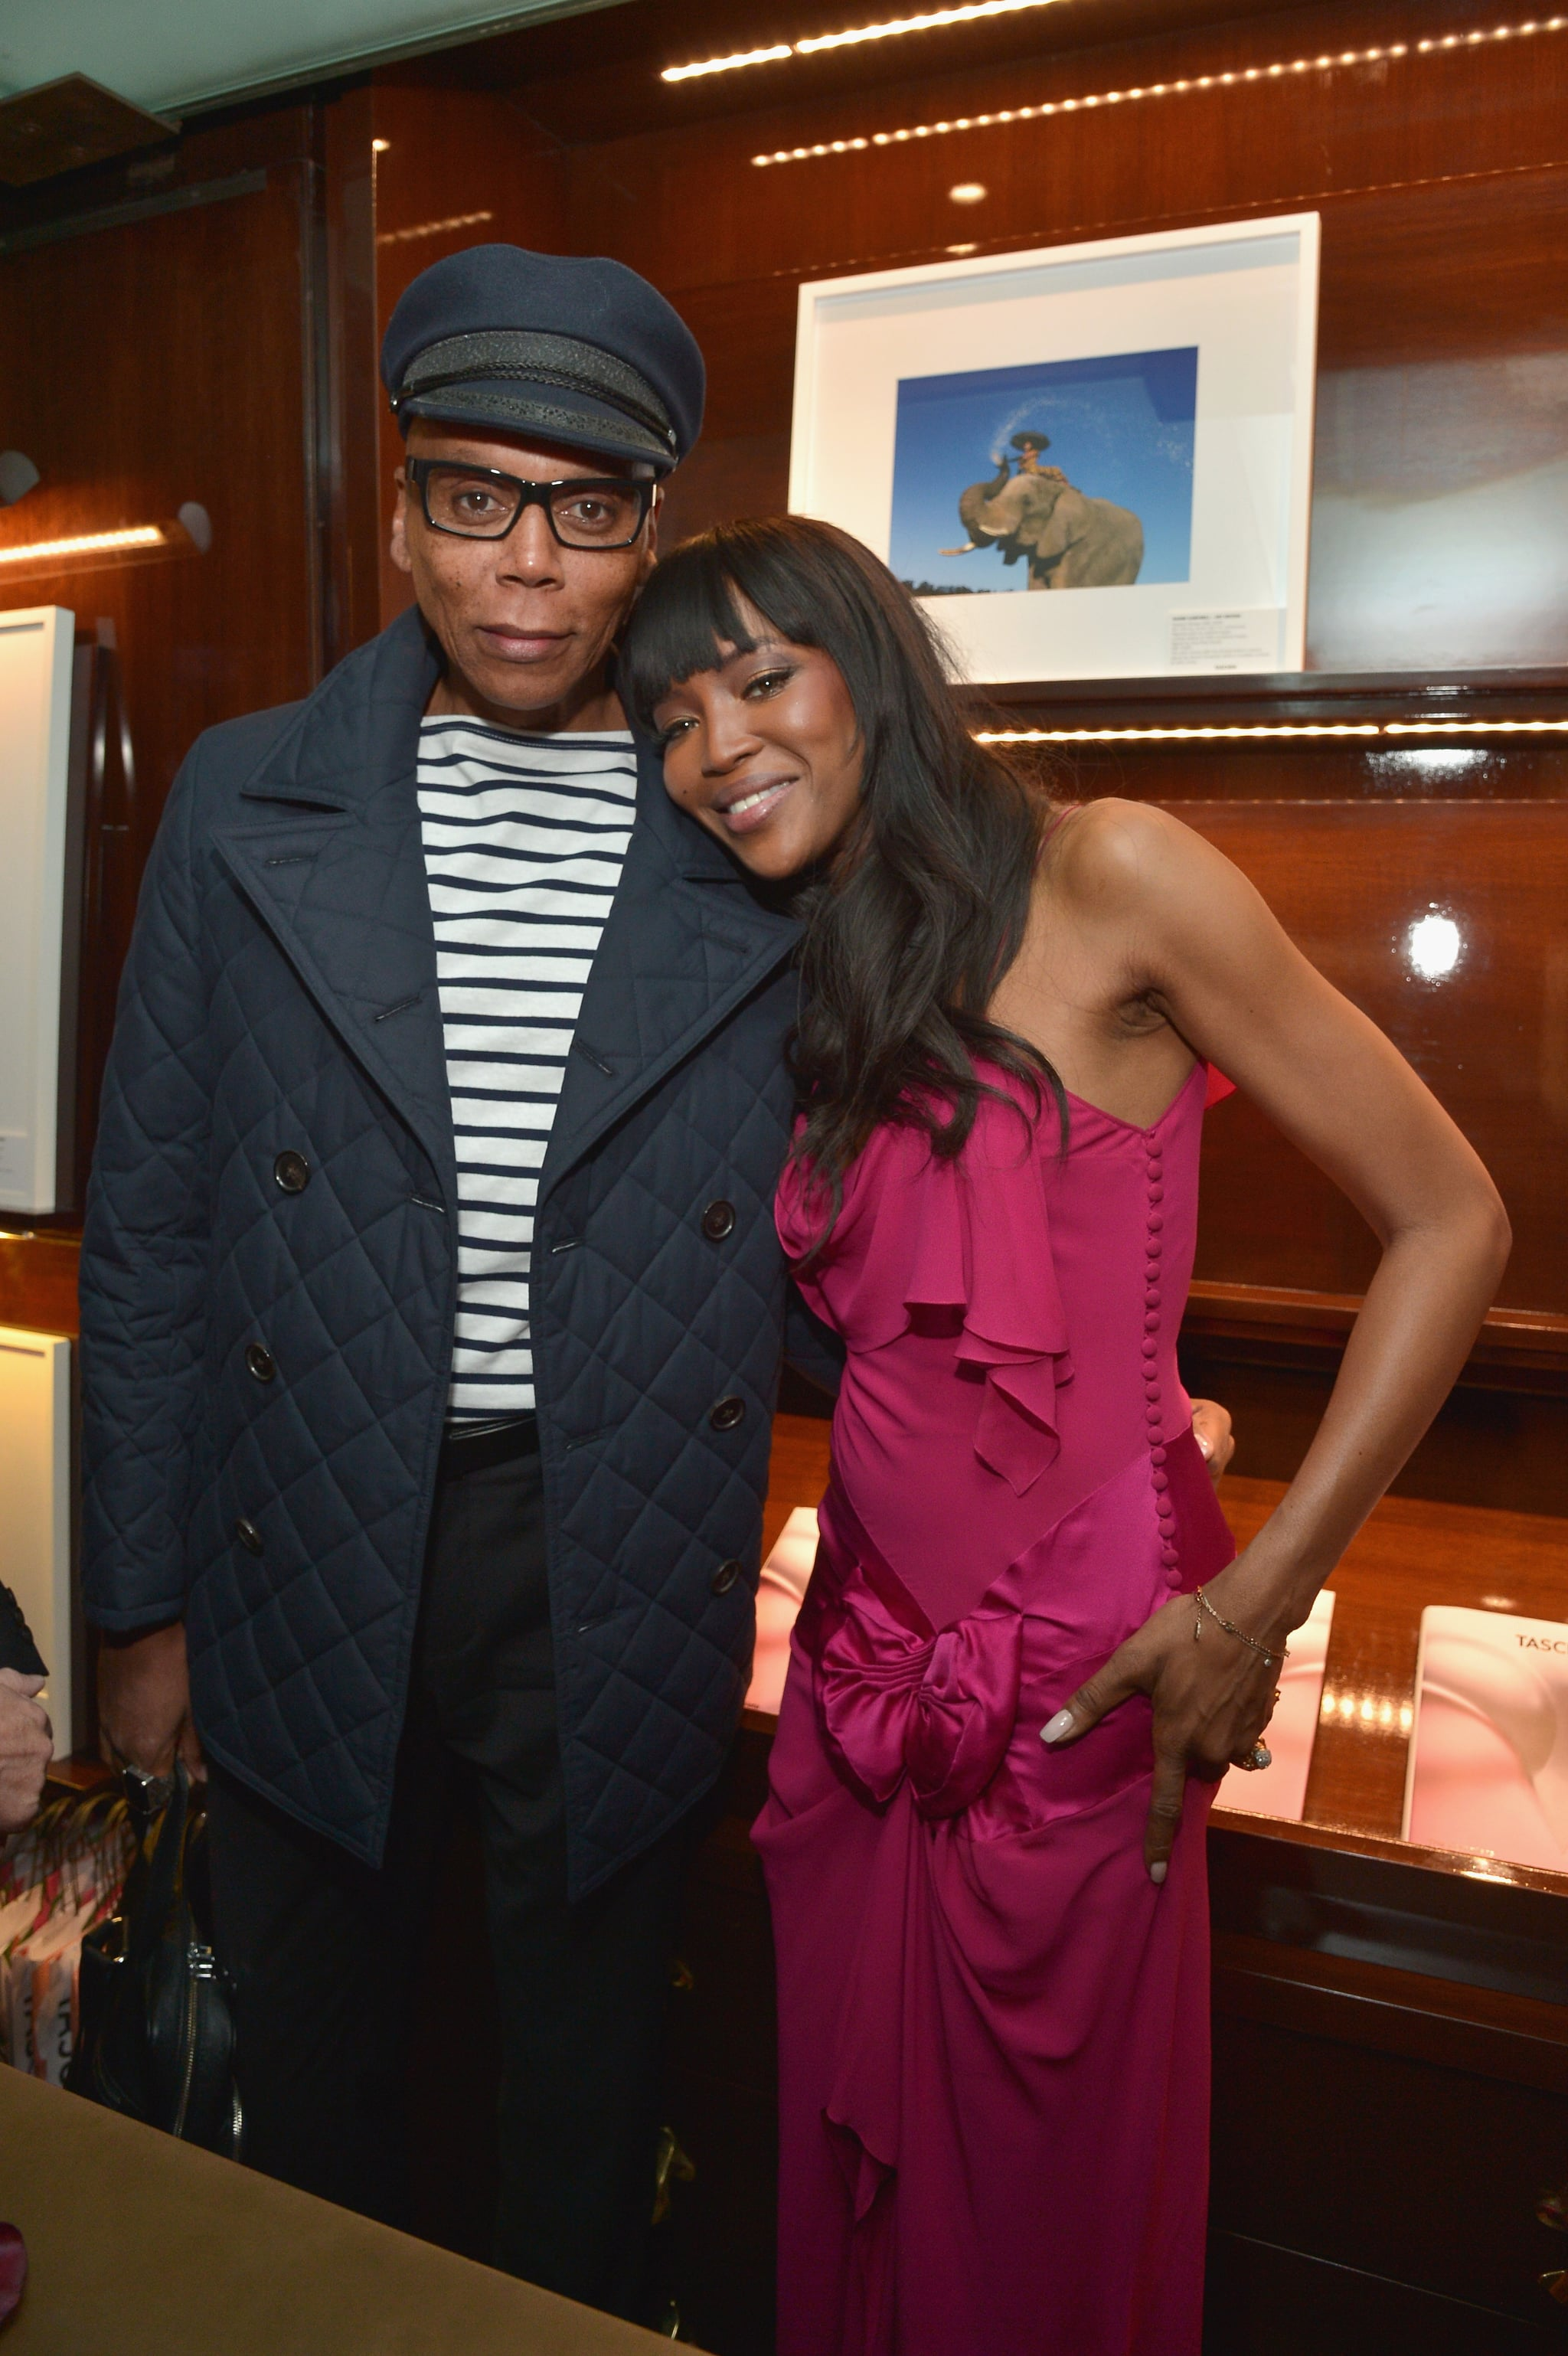 naomi campbell talks about rupaul time popsugar share this link